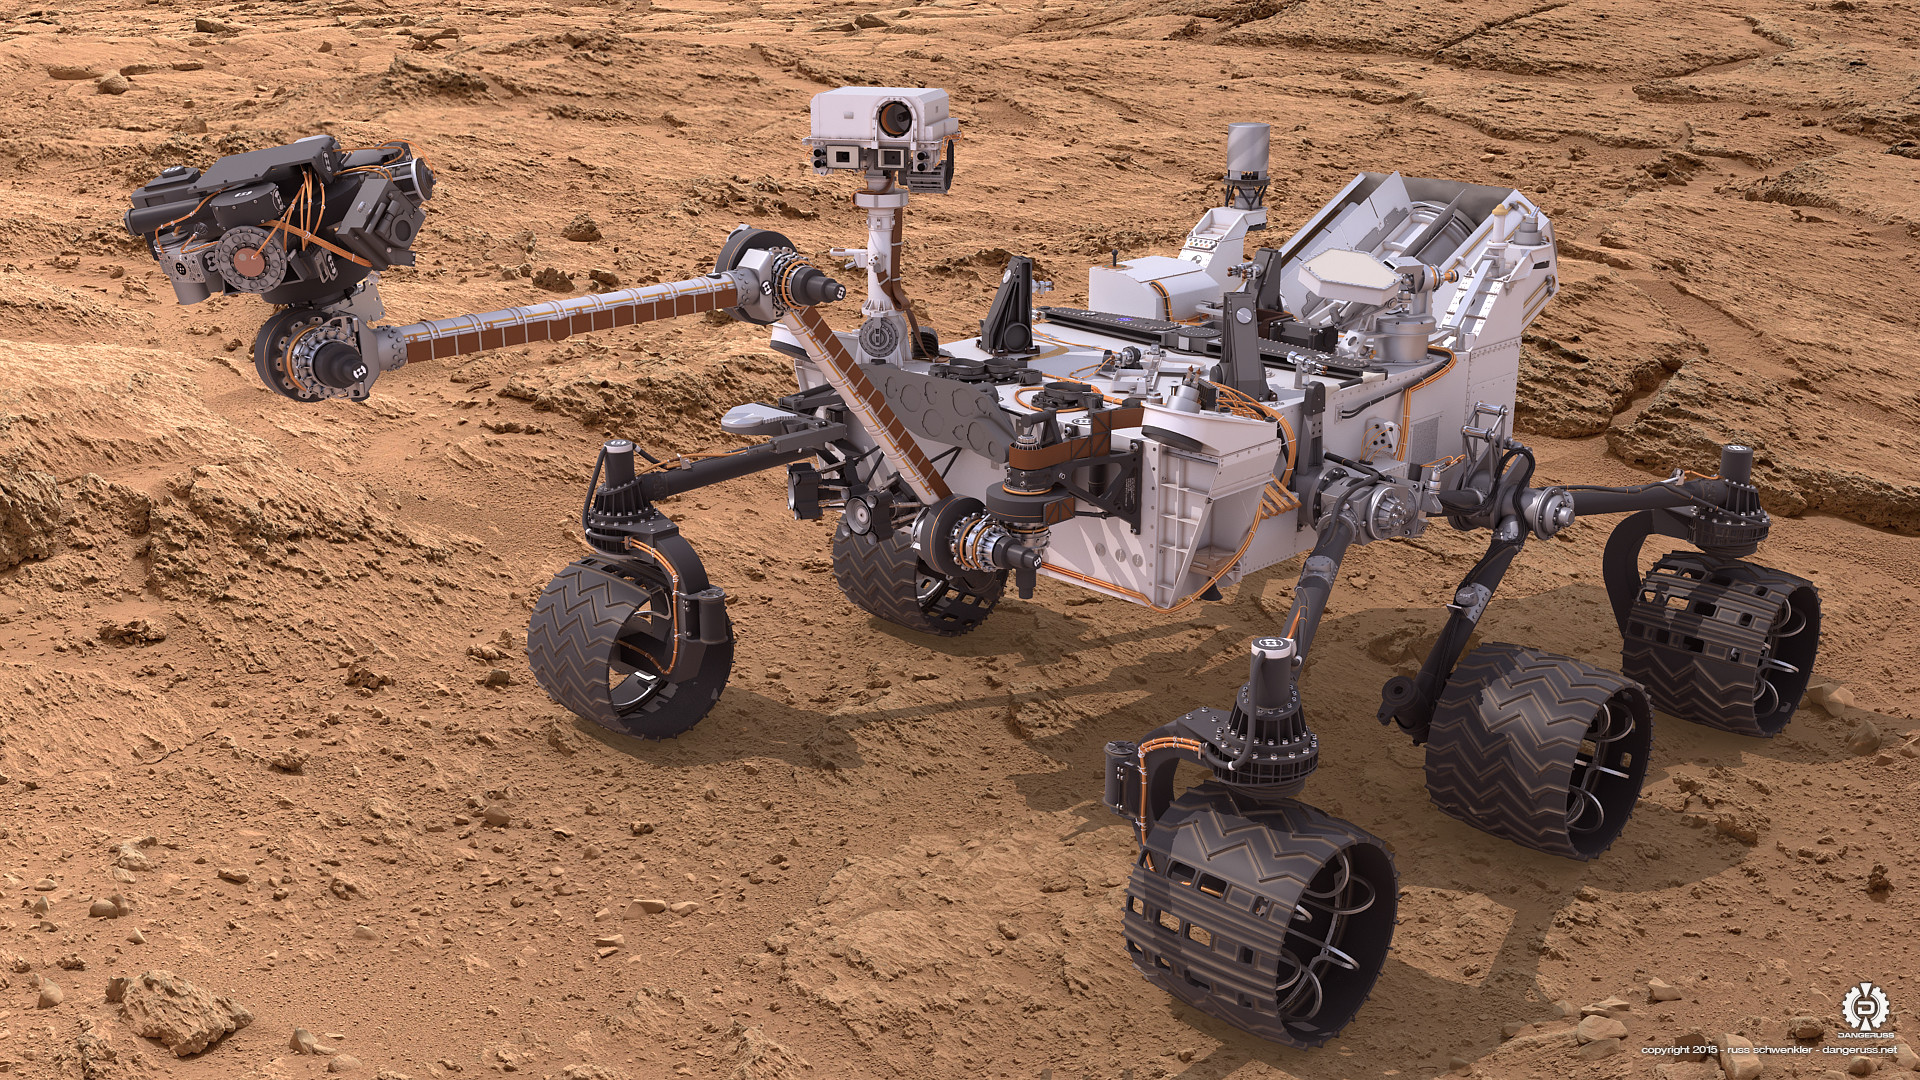 Res: 1920x1080, ... Mars Science Lab Curiosity Rover 01 by dangeruss